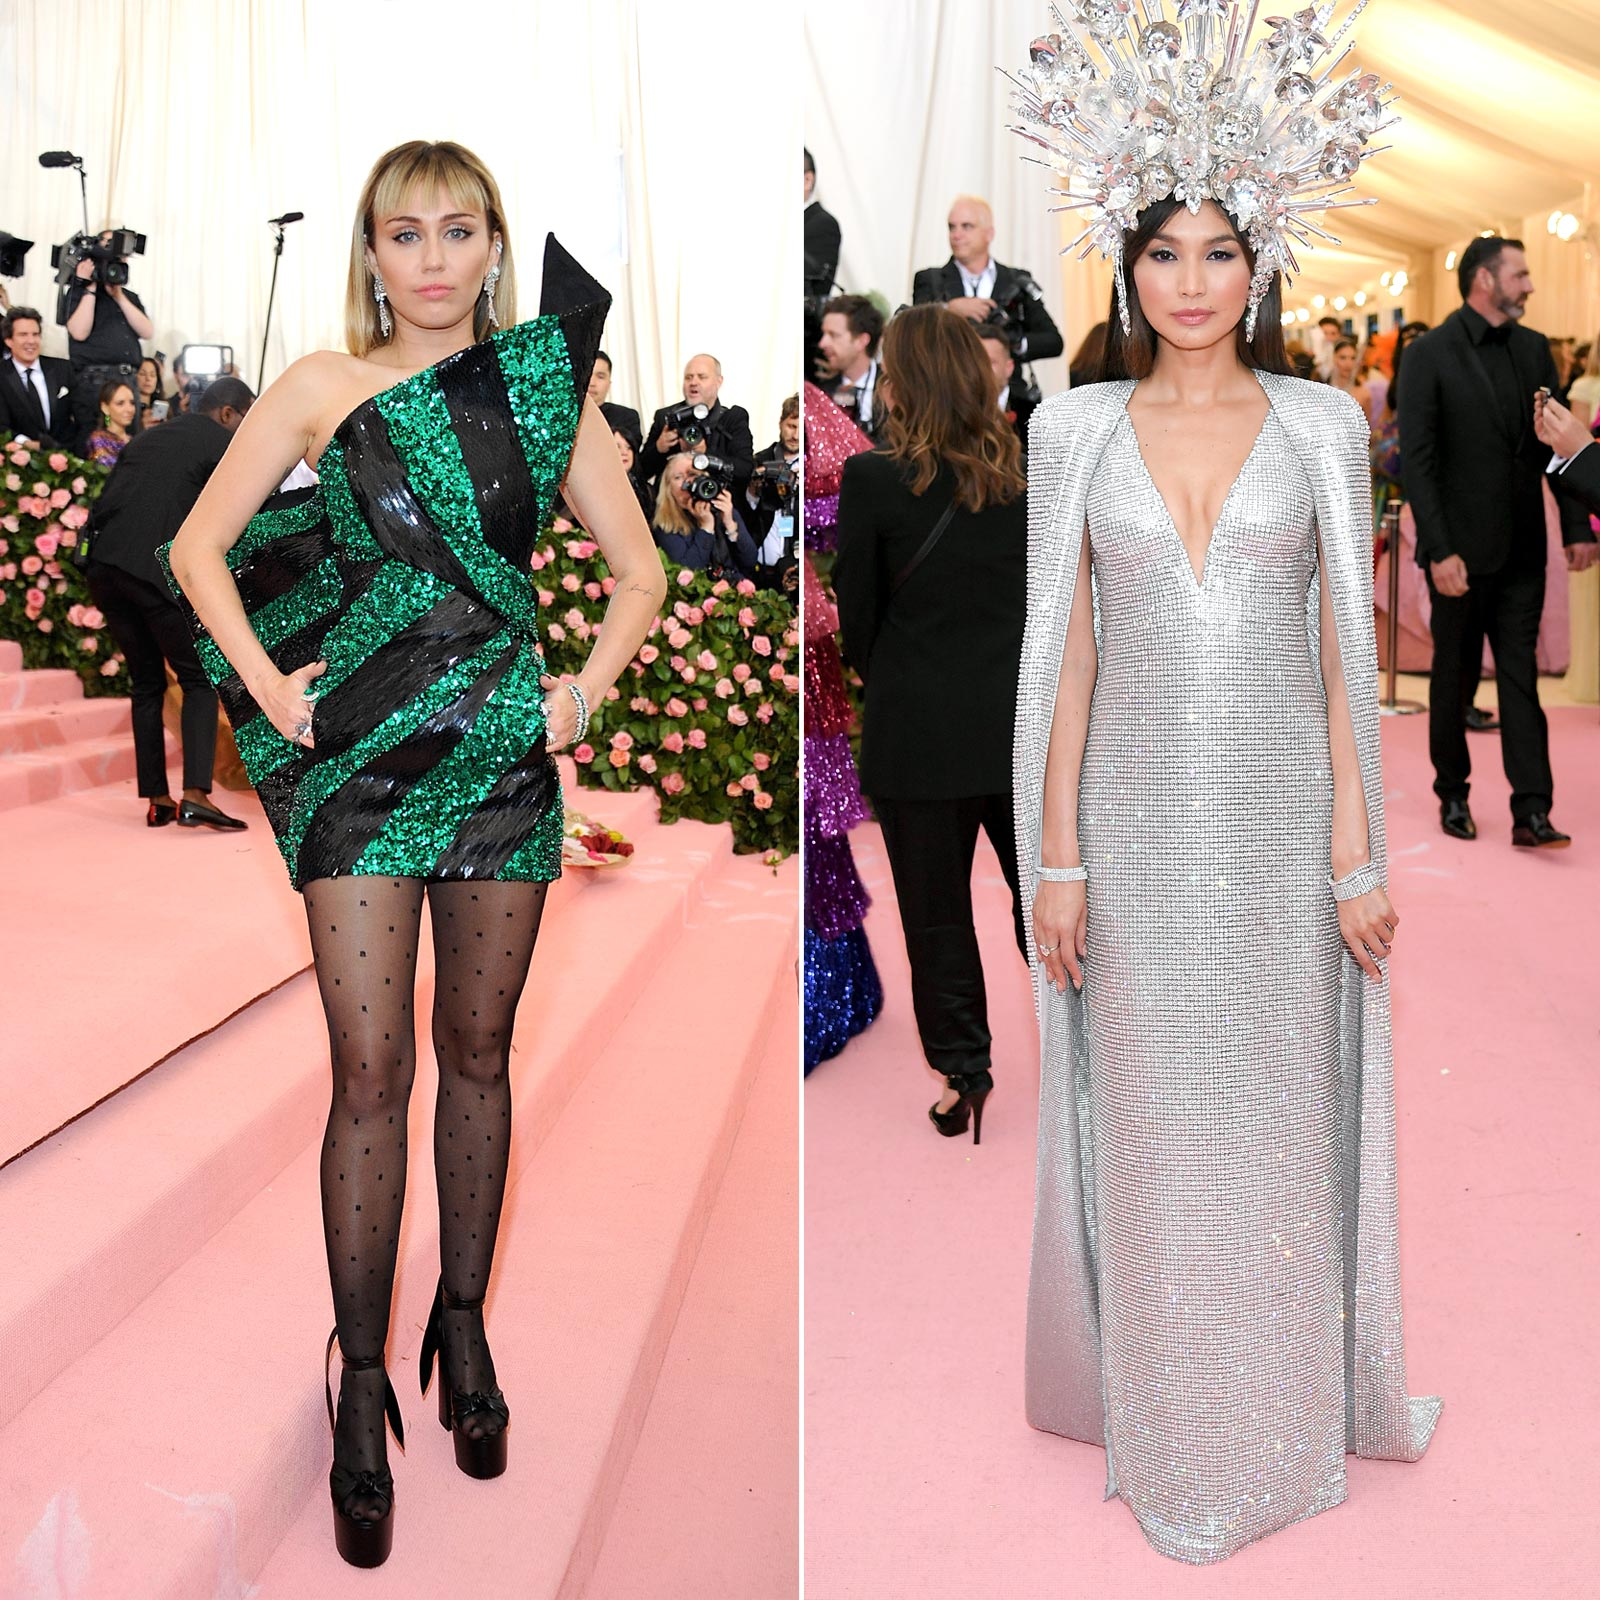 NEW YORK, NY - MAY 06: Miley Cyrus attends The 2019 Met Gala Celebrating Camp: Notes On Fashion at The Metropolitan Museum of Art on May 6, 2019 in New York City. (Photo by Rabbani and Solimene Photography/WireImage) NEW YORK, NEW YORK - MAY 06: Gemma Chan attends The 2019 Met Gala Celebrating Camp: Notes on Fashion at Metropolitan Museum of Art on May 06, 2019 in New York City. (Photo by Neilson Barnard/Getty Images)